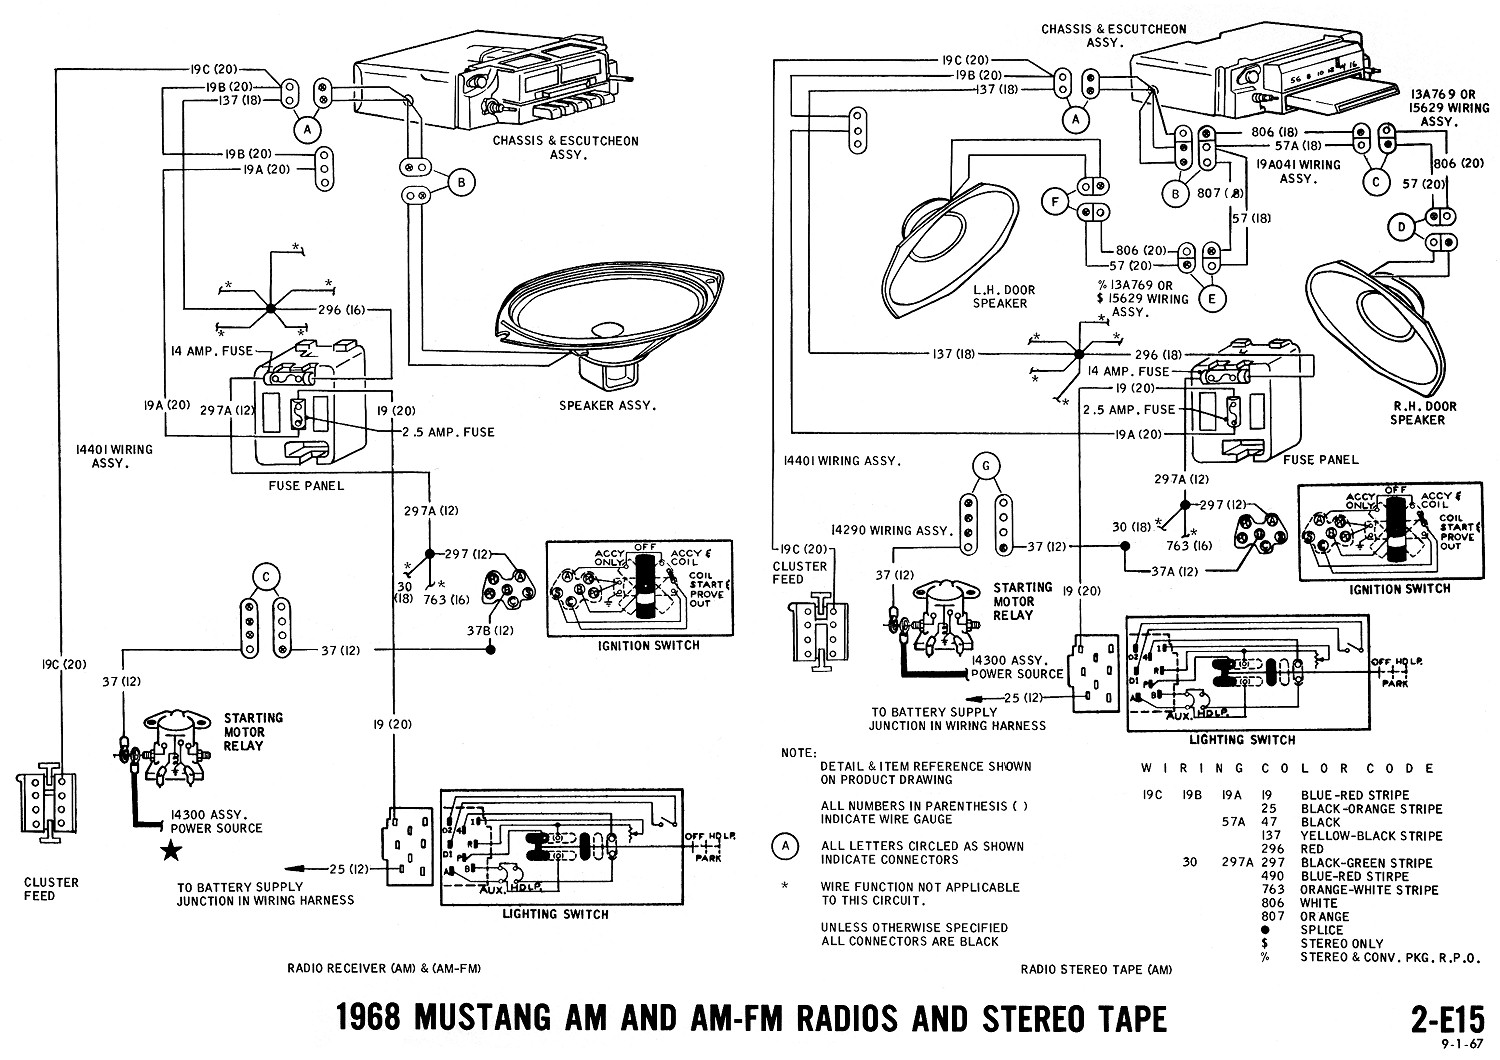 1980 mustang wiring harness diagram wire center u2022 rh 207 246 123 107 1980 Mustang Alternator Wiring Diagram 1980 Mustang Alternator Wiring Diagram